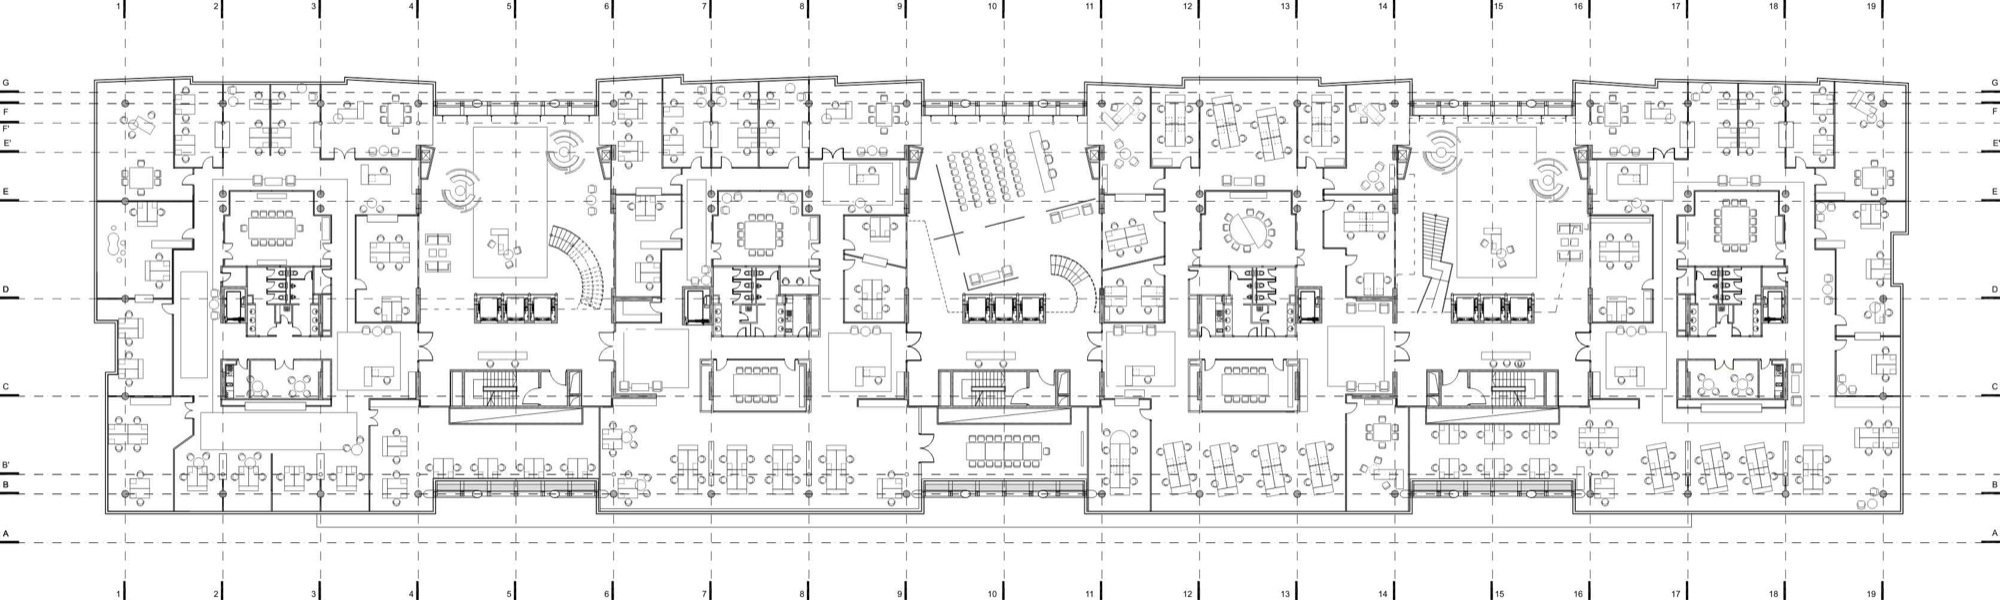 Gallery of in progress b23 office park off 18 for Typical office floor plan